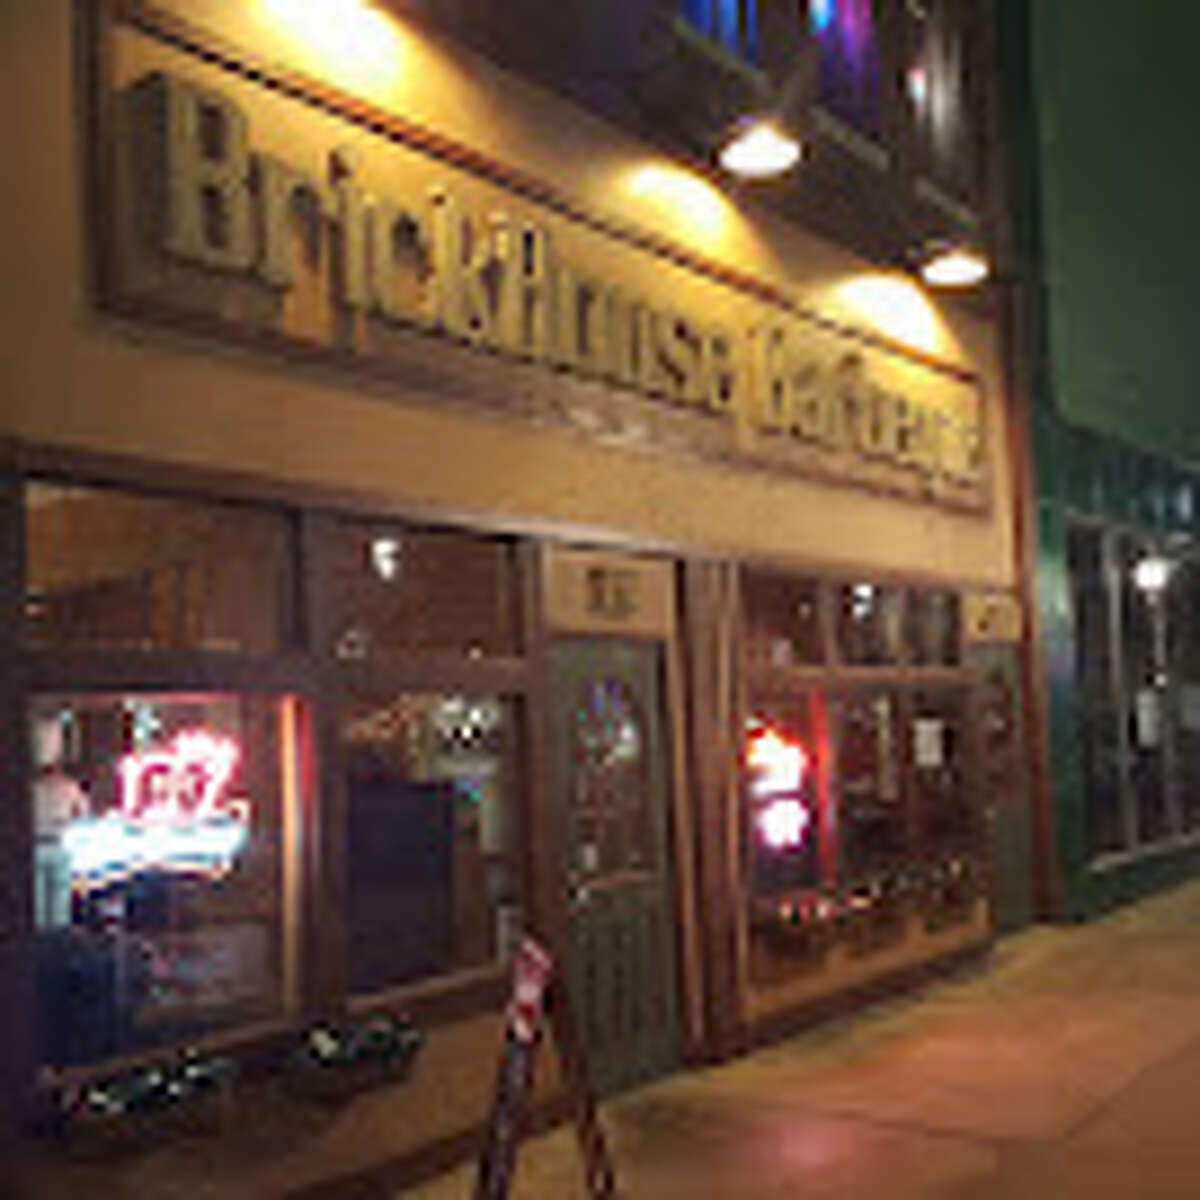 Brick House Barbeque in Jacksonville is open during reduced hours 4 p.m. to 9:30 p.m. on Wednesdays through Saturdays. It offers horseshoe pizza. For more information, visit its Facebook.